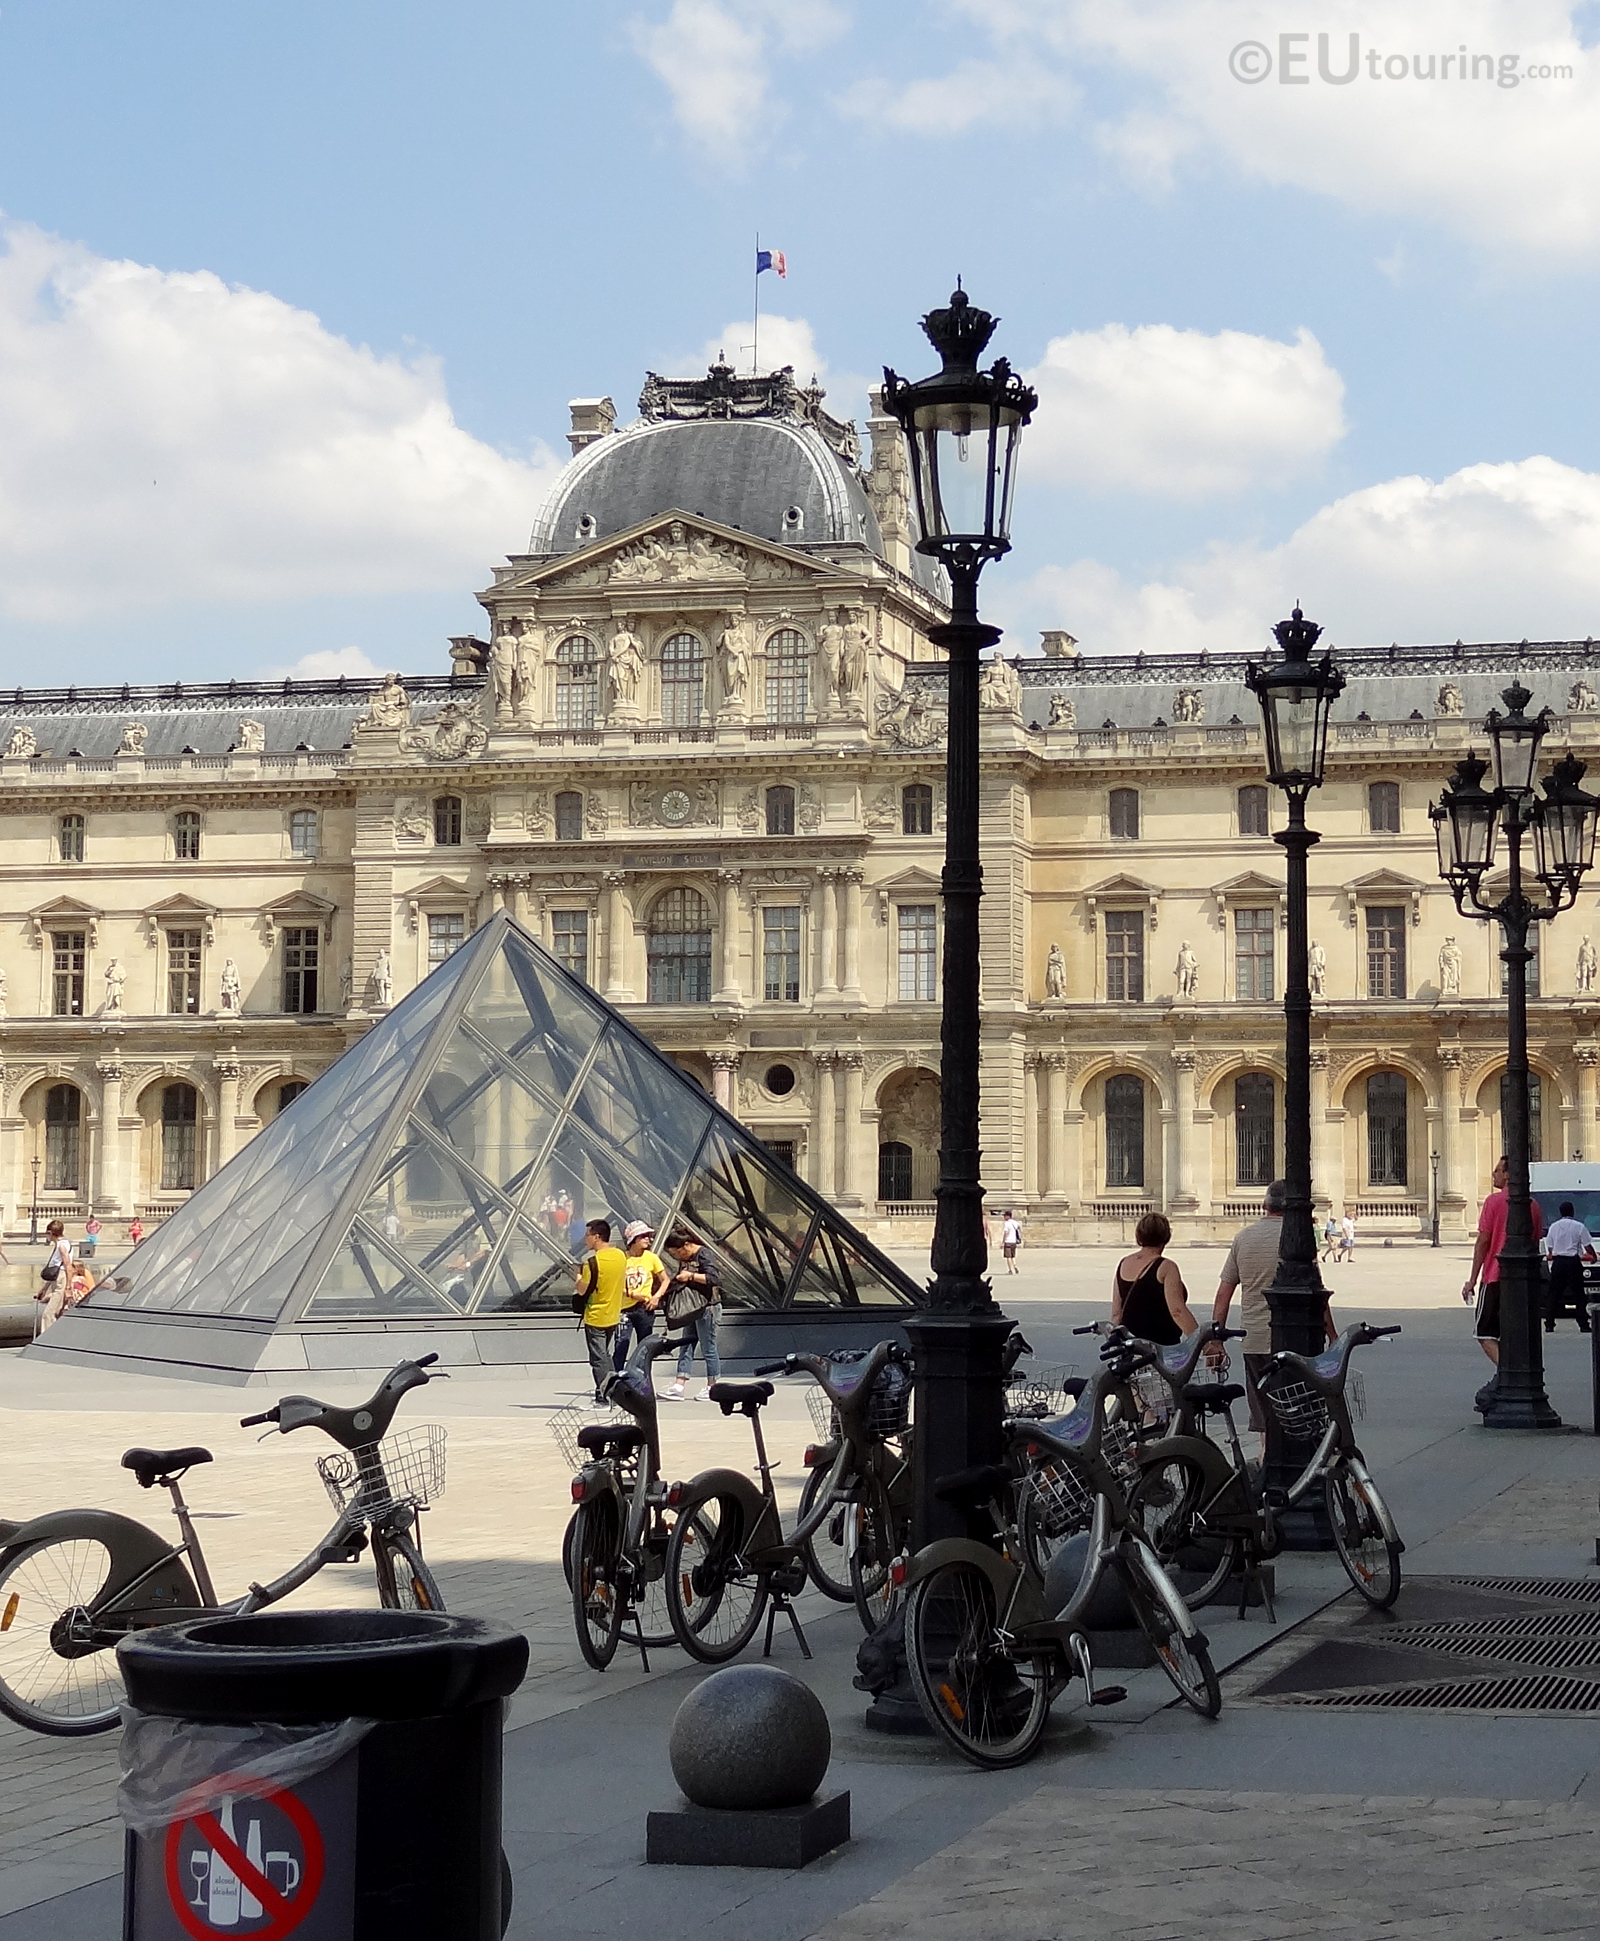 The Louvre Palace and Velib